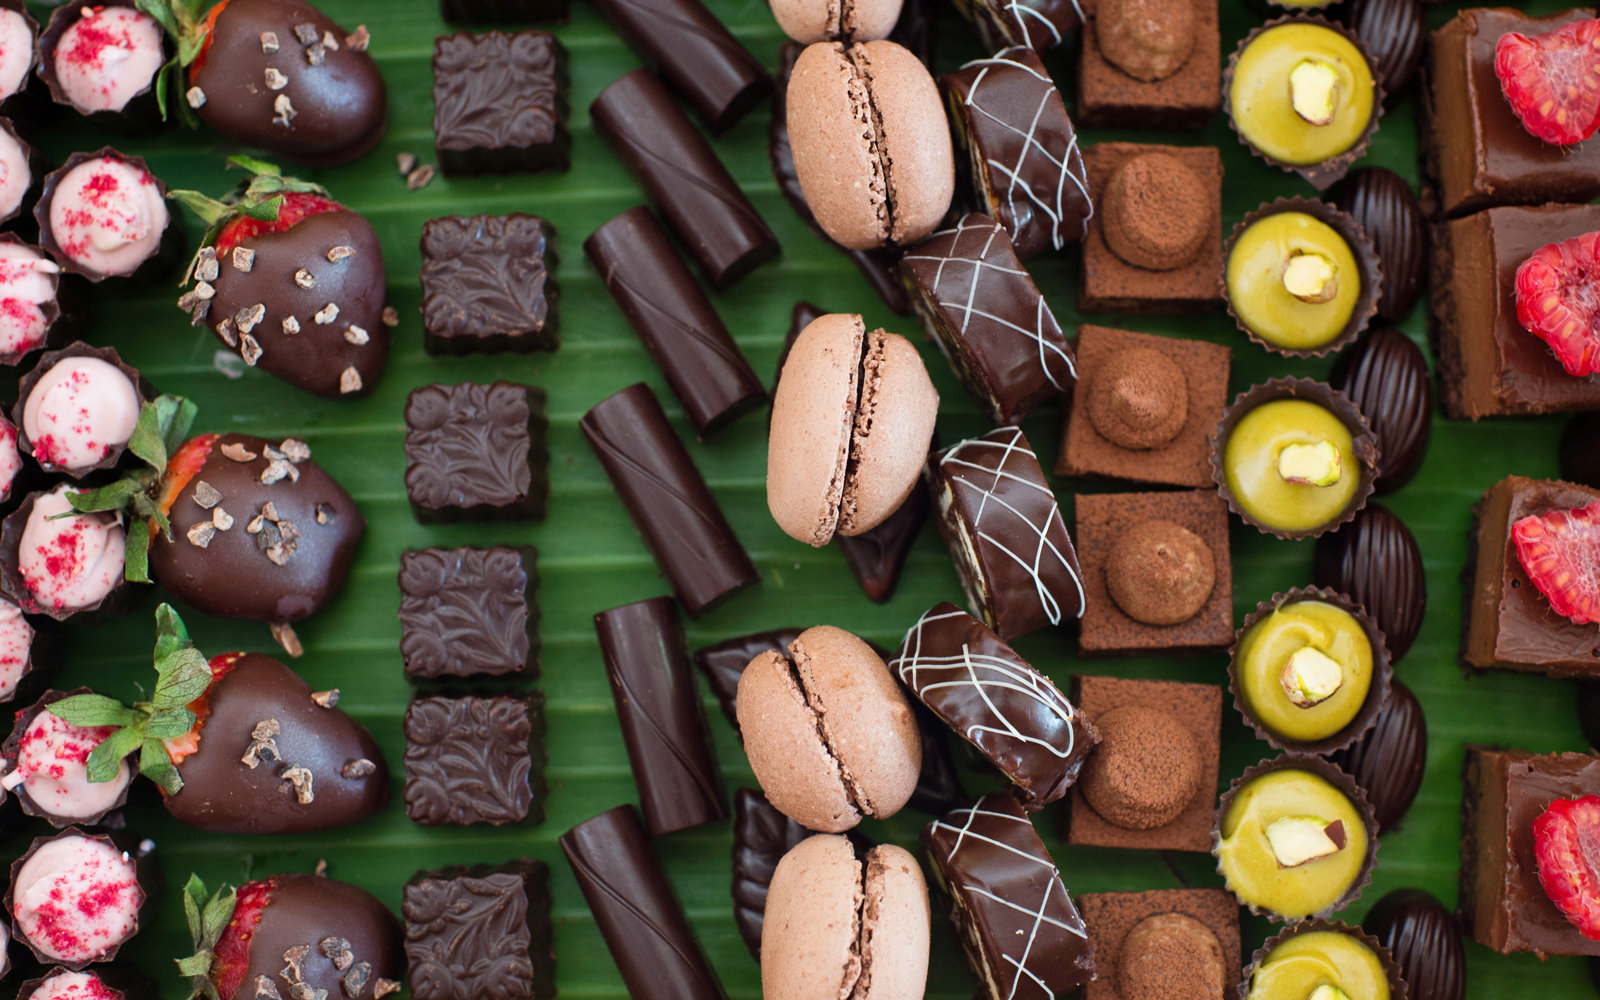 10 Sweet Hotels Chocolate Lovers Need to Add to Their Bucket Lists